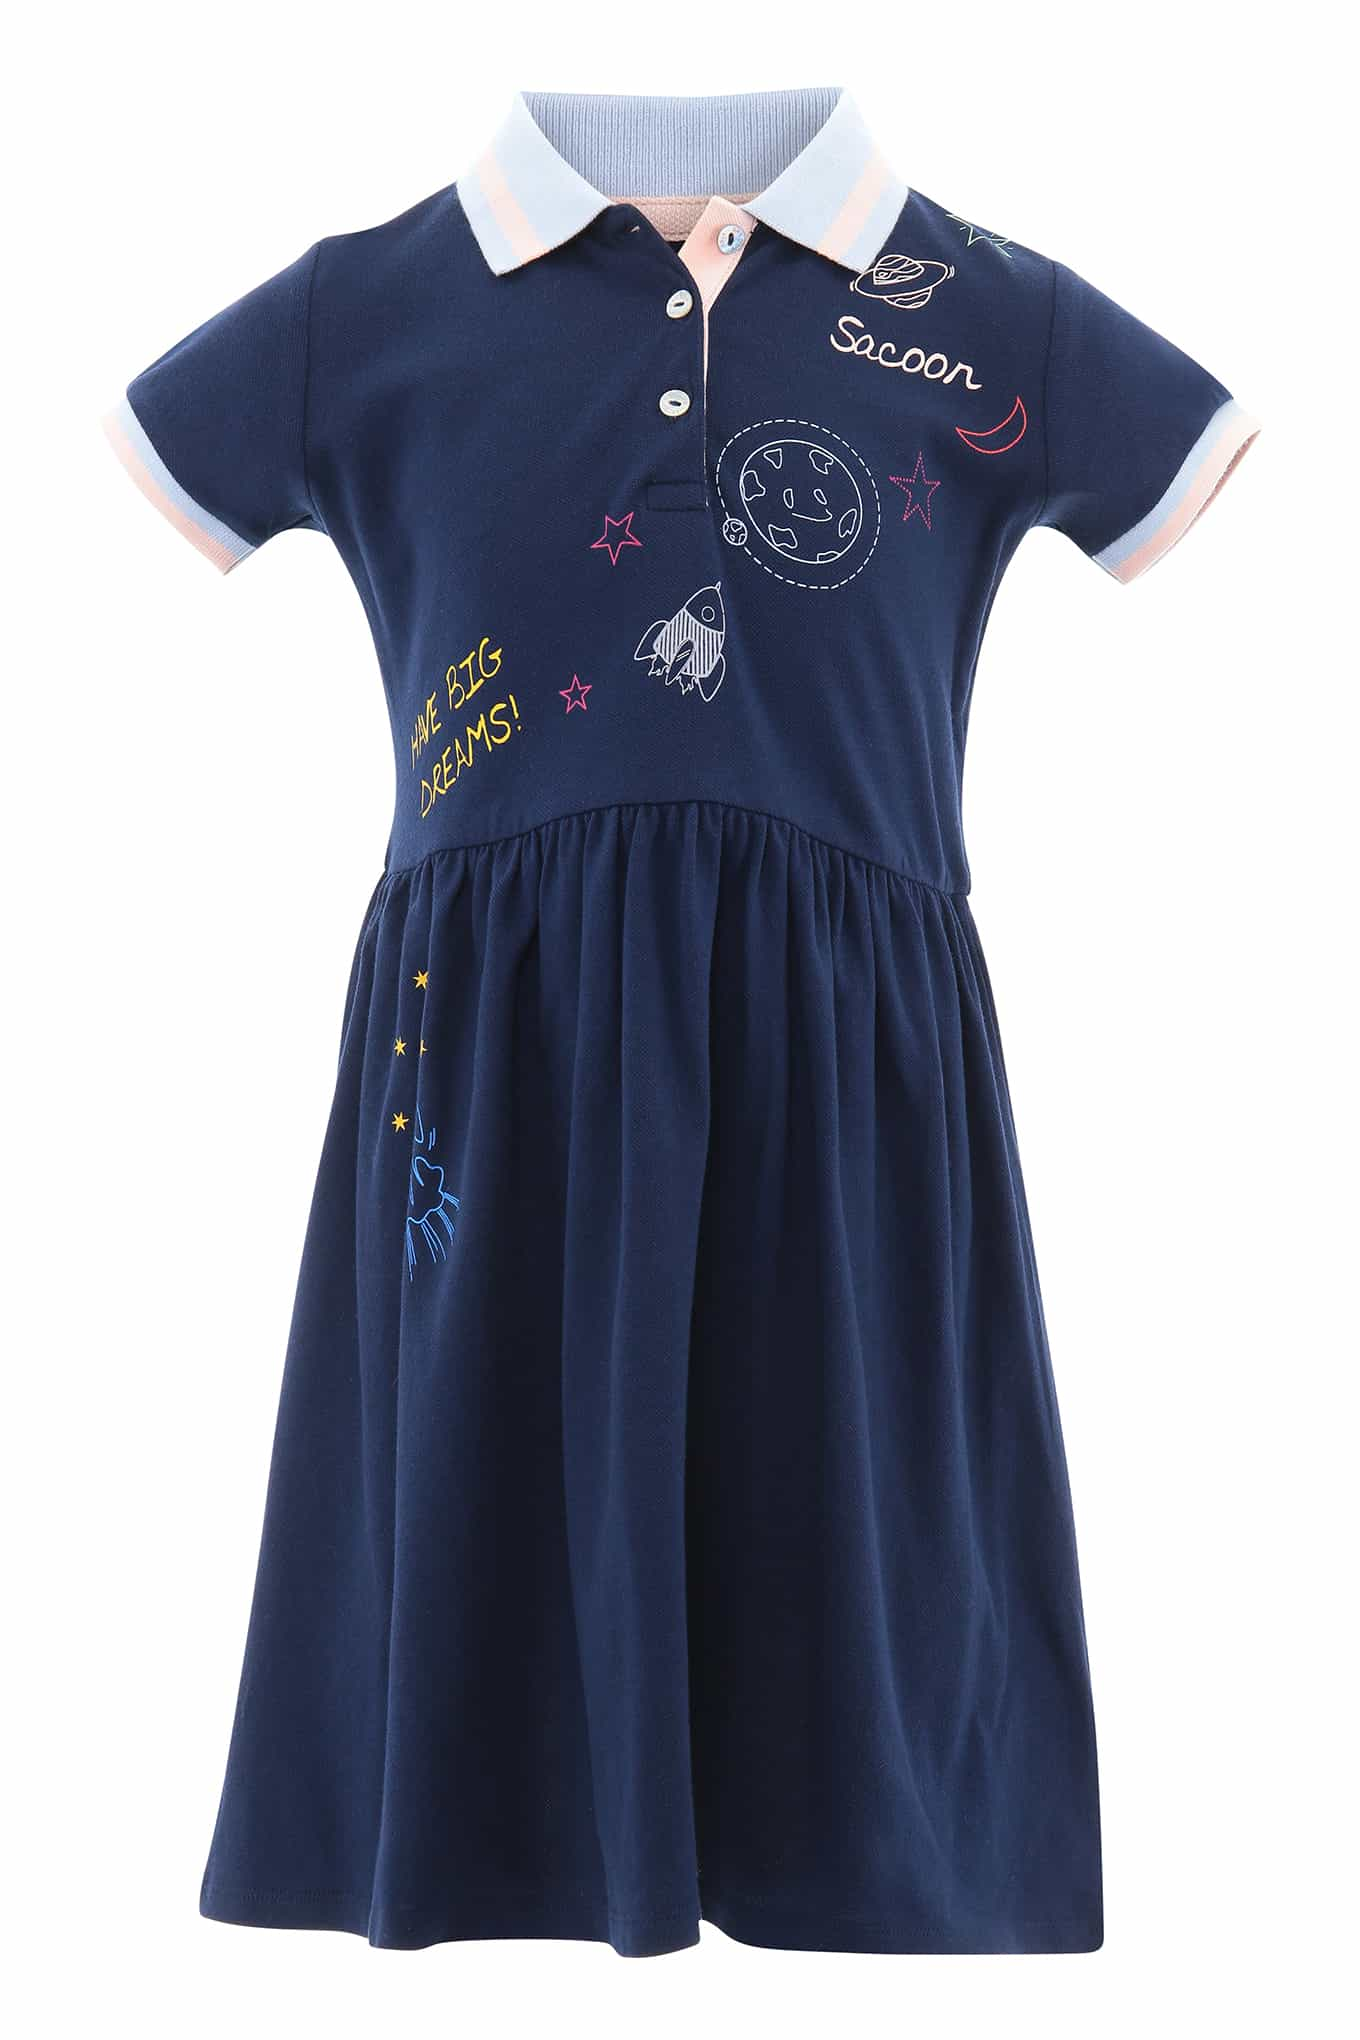 Dress Piquet Dark Blue Sport Girl